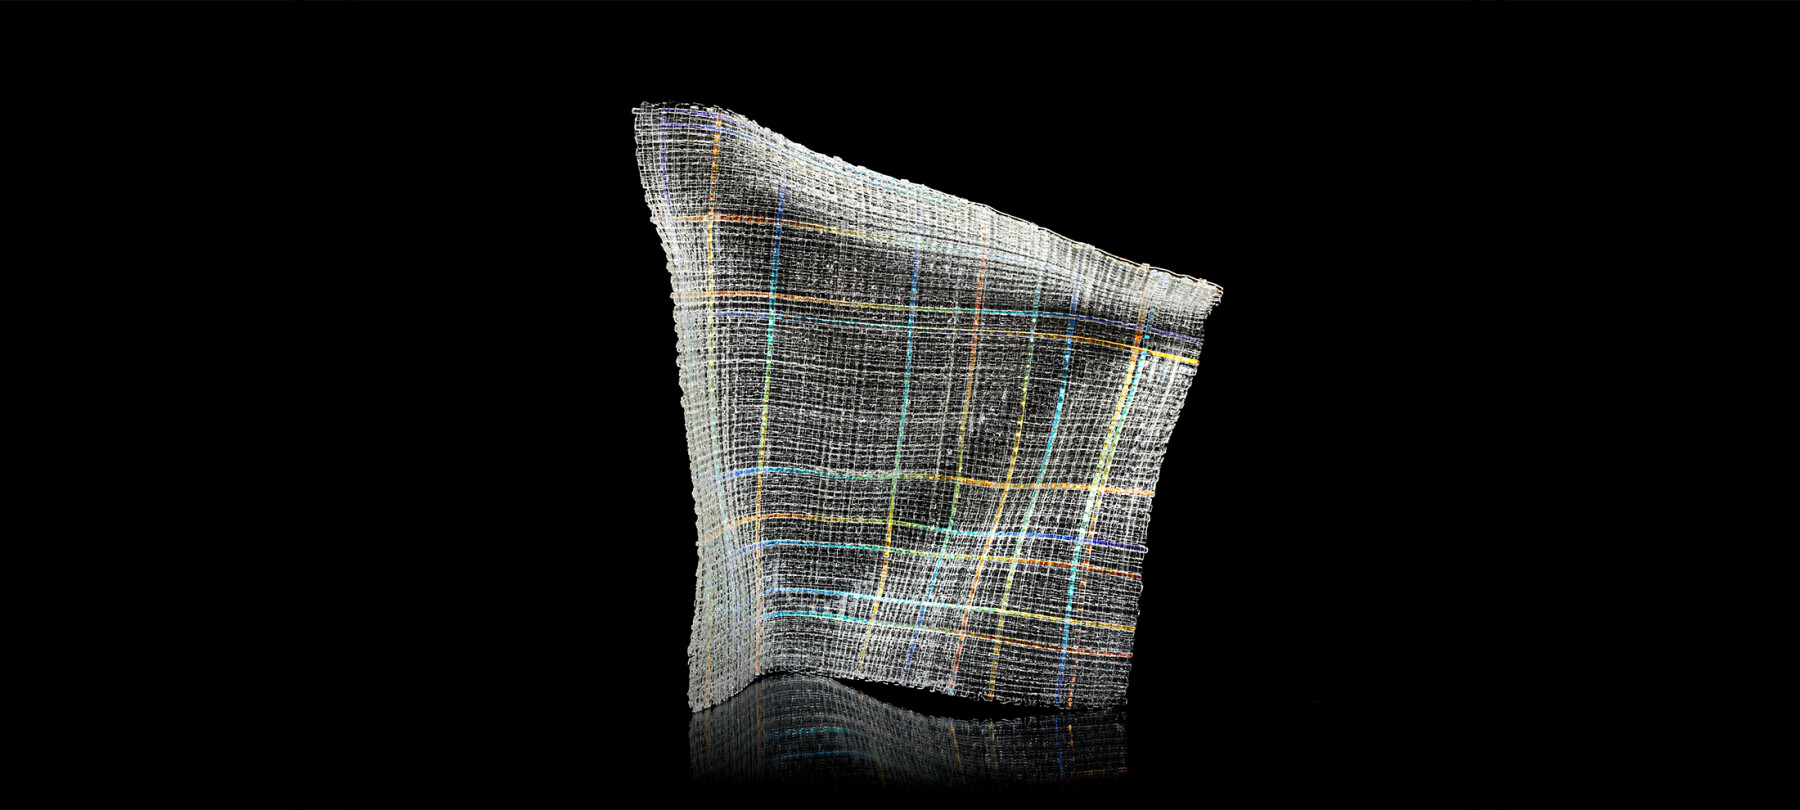 Cathryn_Shilling_Woven_Light_image_1